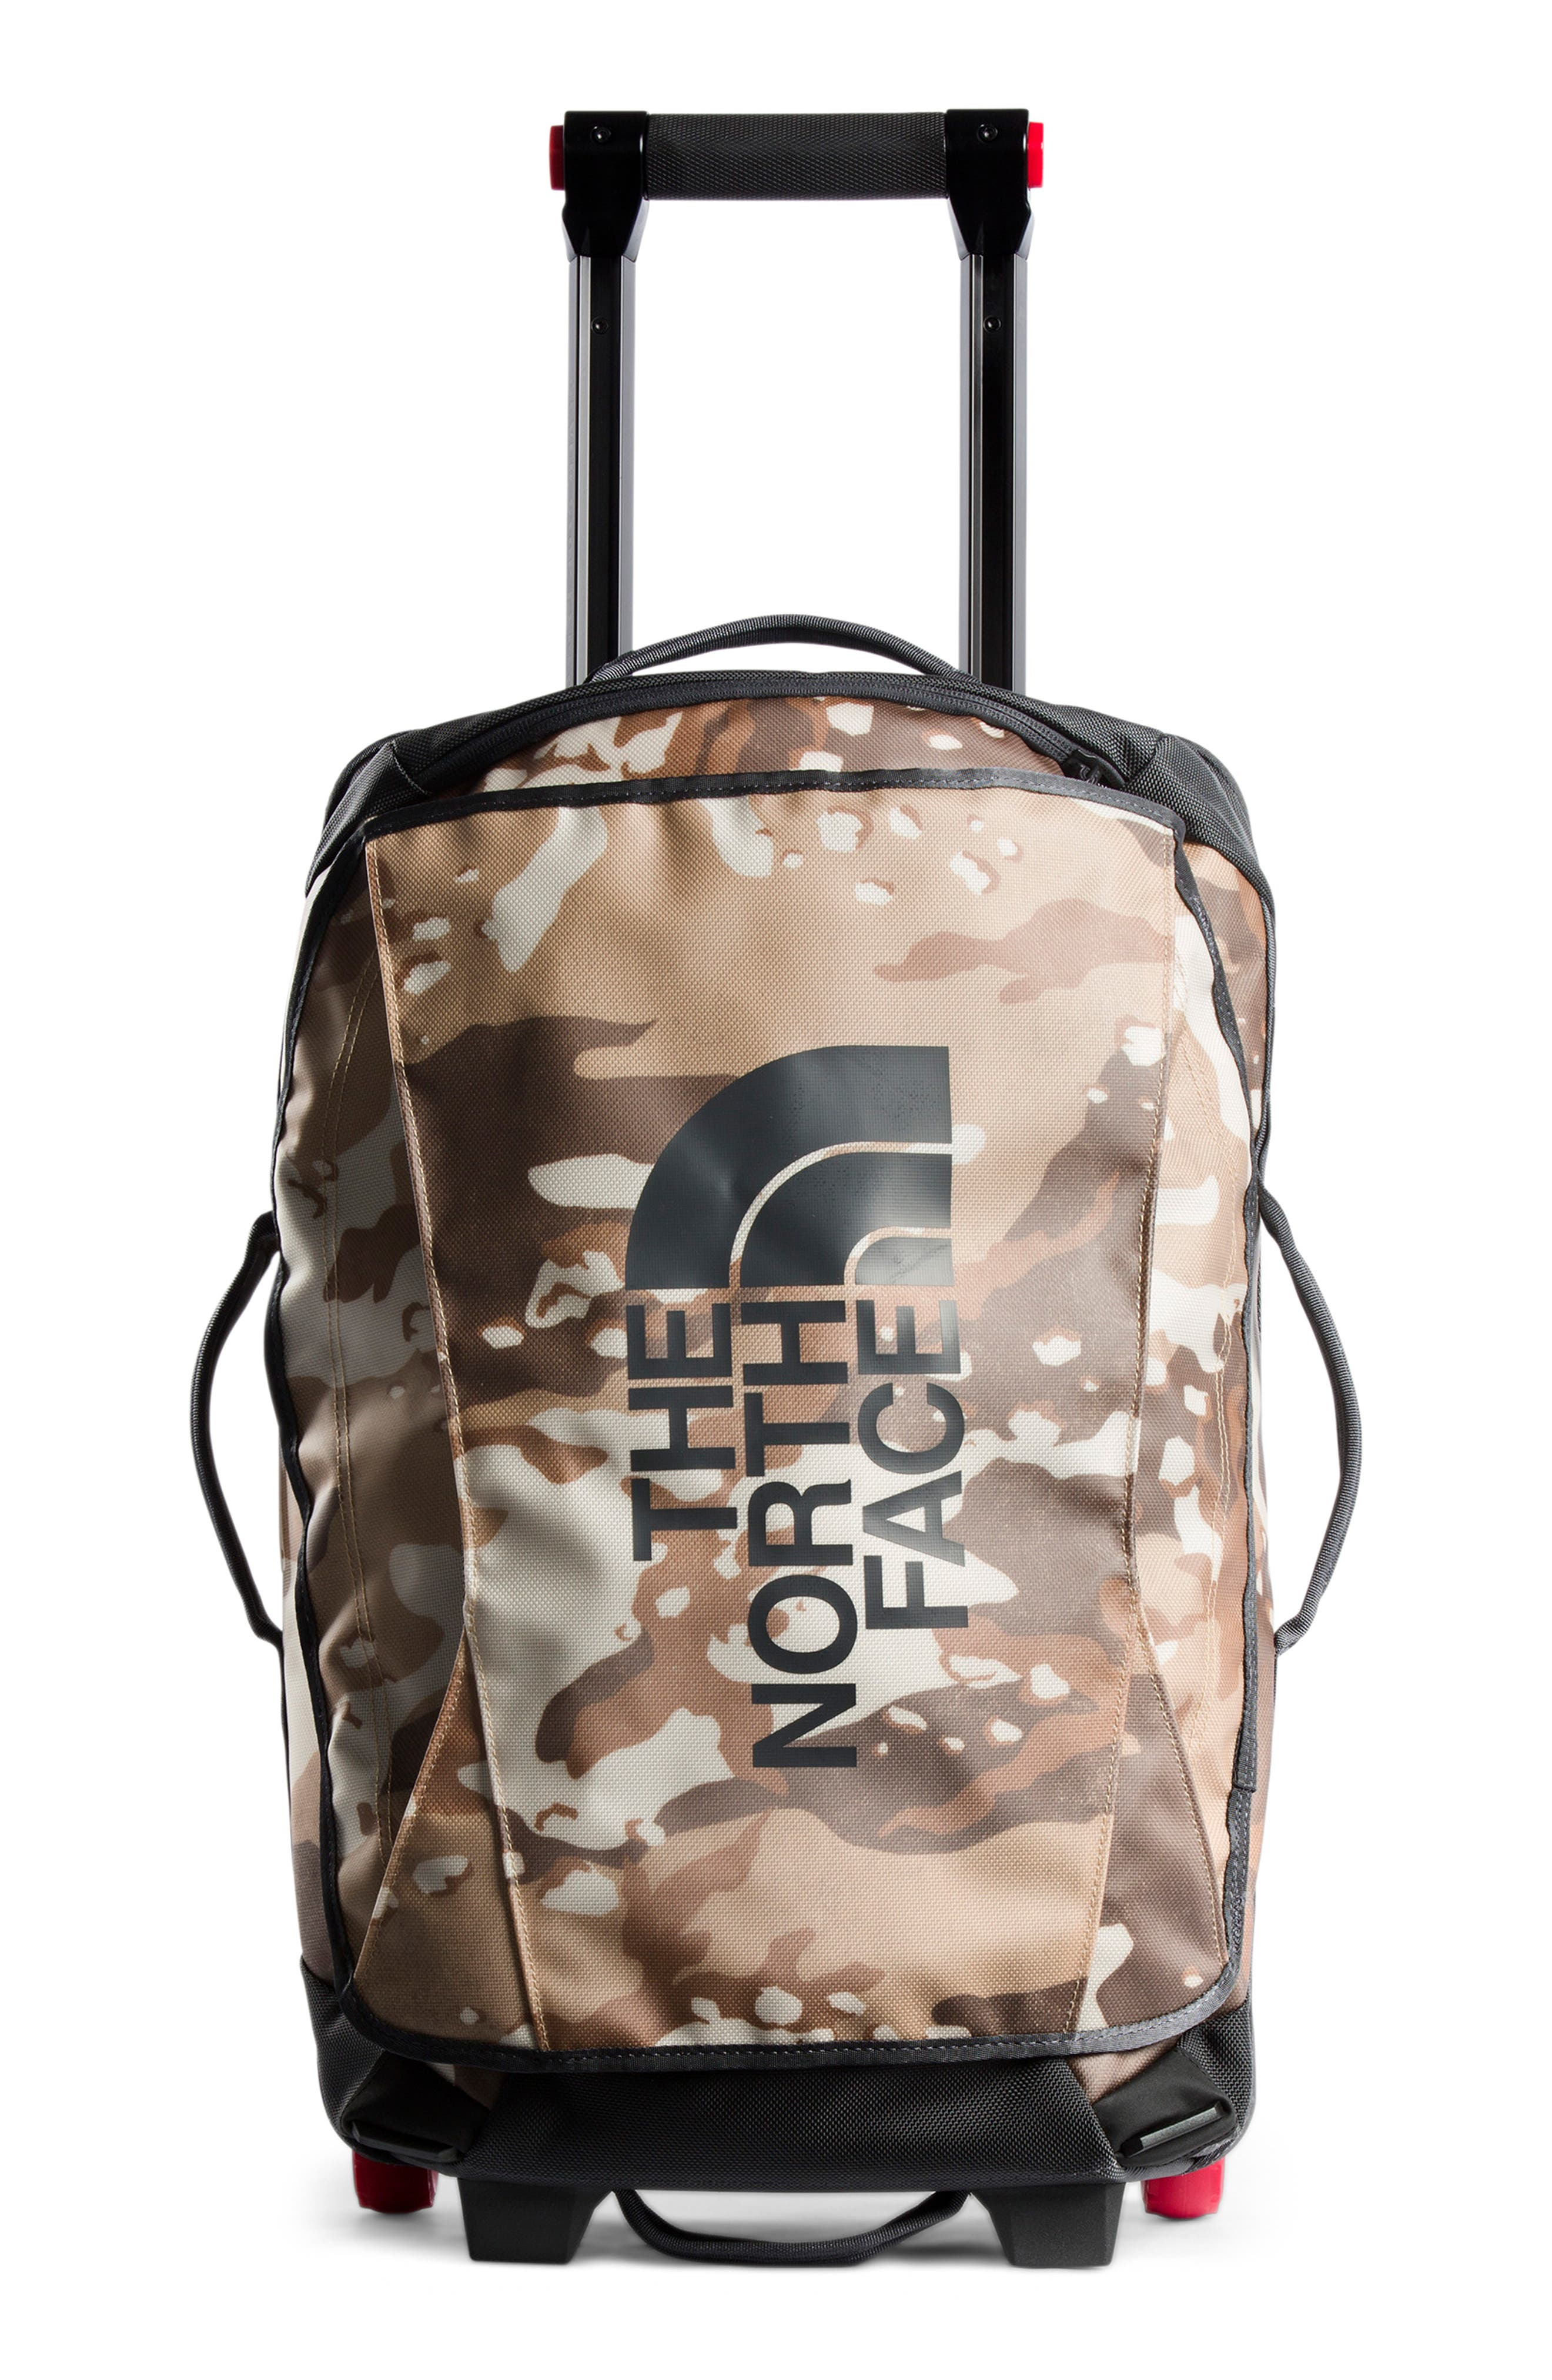 THE NORTH FACE, Rolling Thunder 21-Inch Wheeled Carry-On, Main thumbnail 1, color, KHAKI DESERT/ GREY